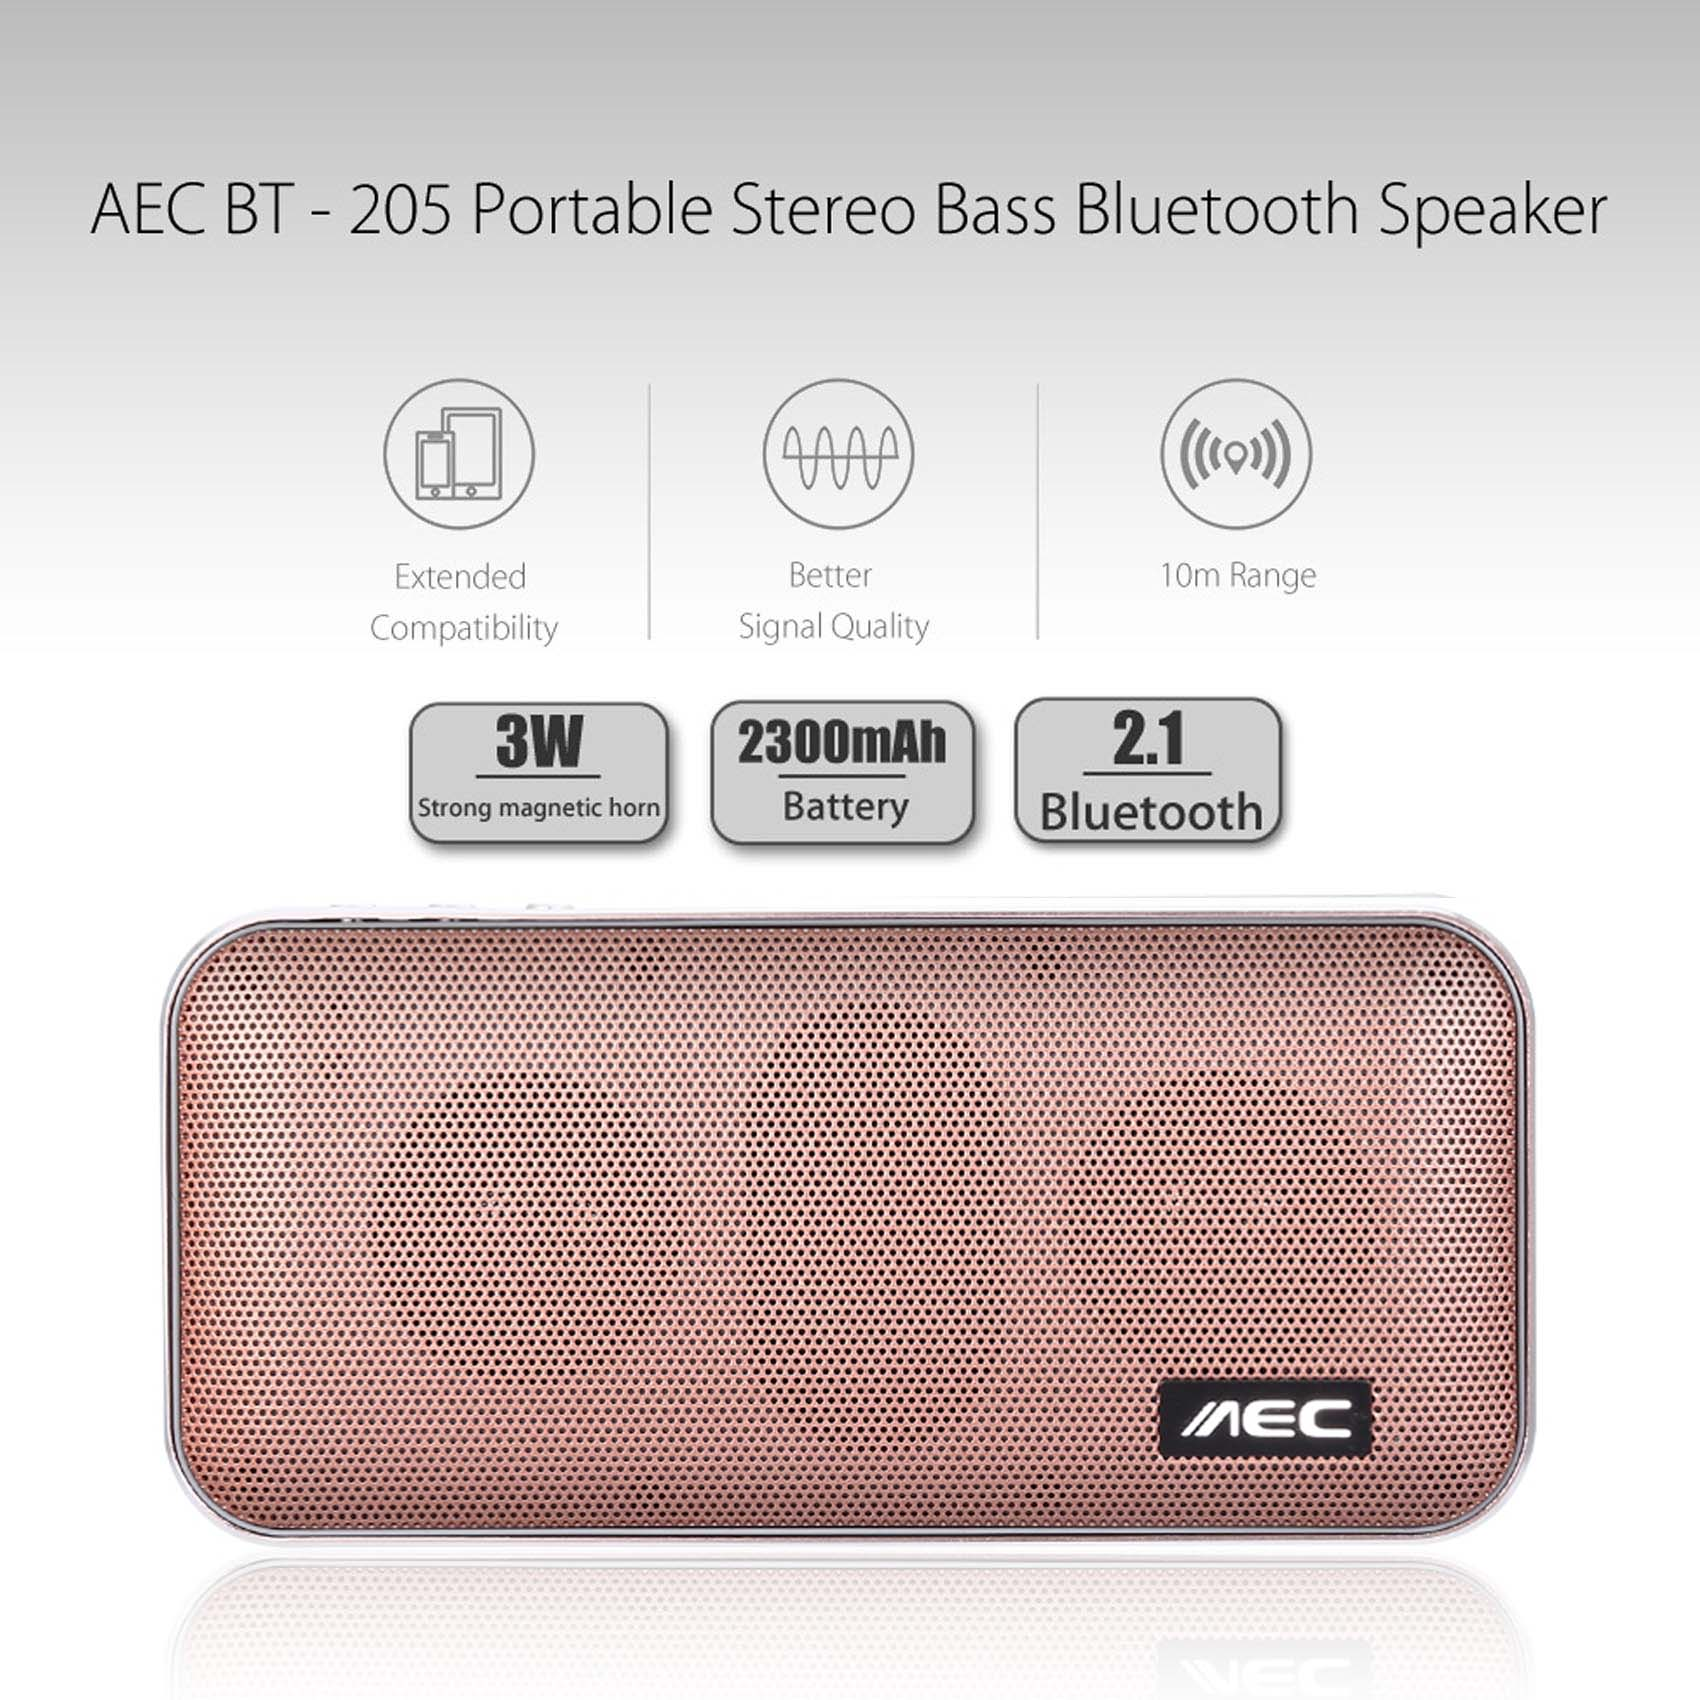 AEC Portable Stereo Bass Bluetooth Speaker With Built In 2600 MAH Powerbank - Rose Gold